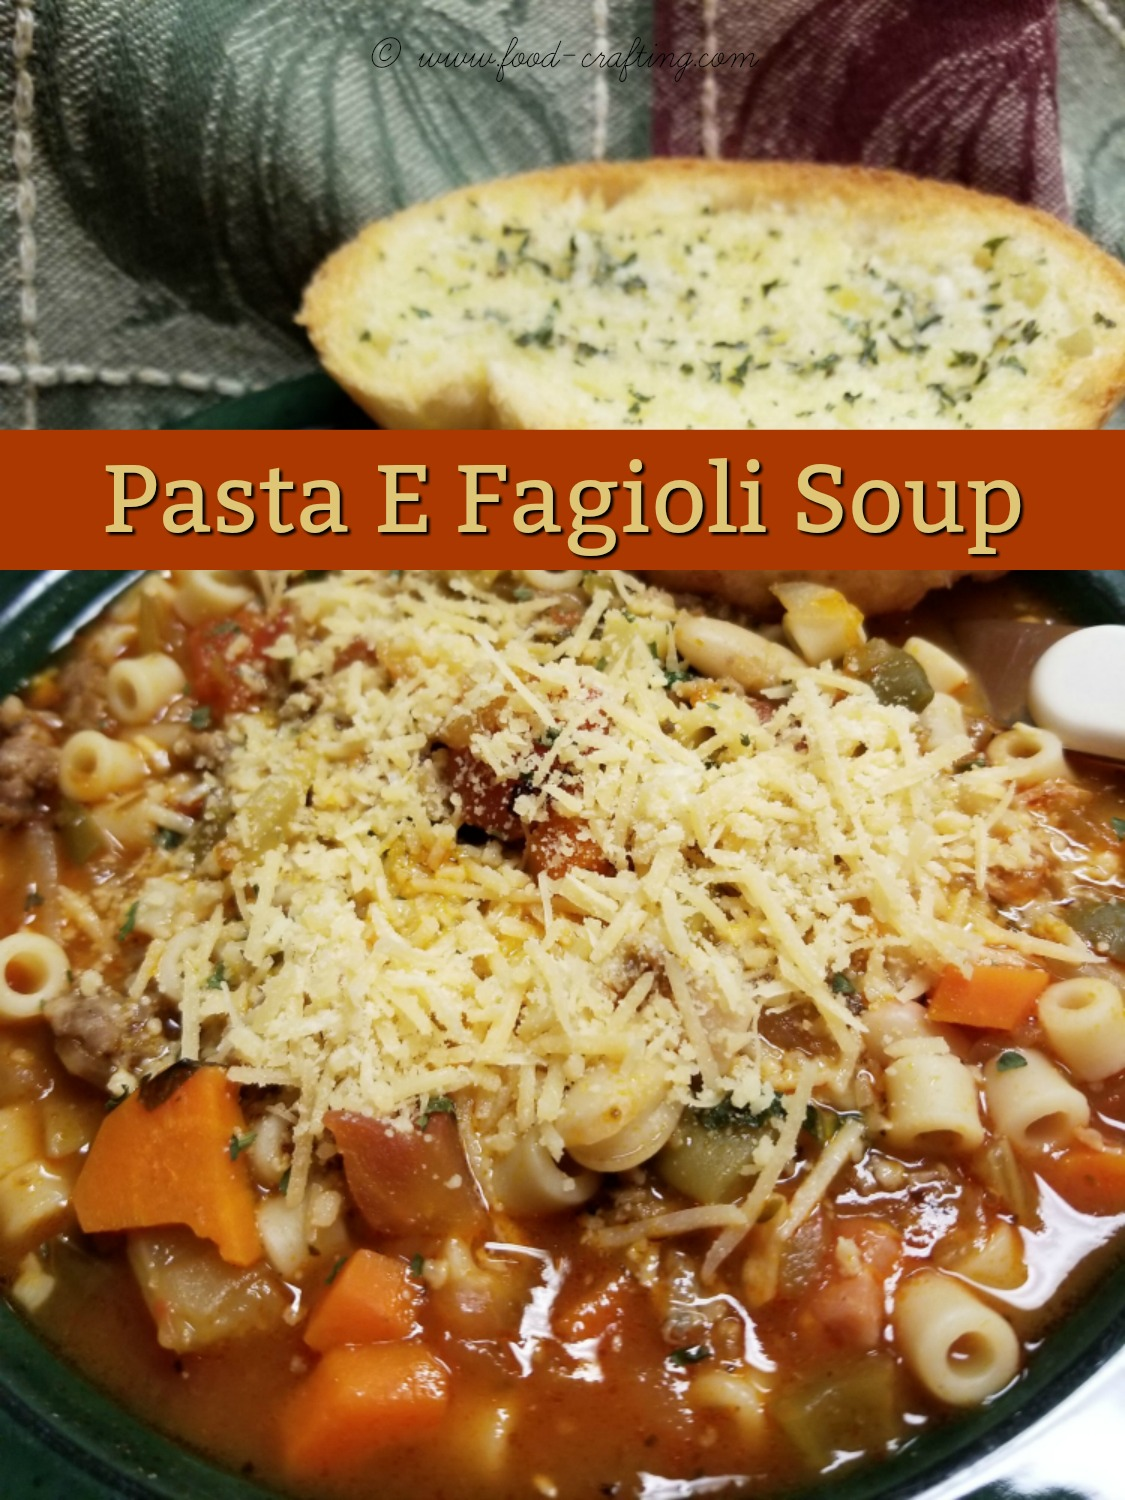 Italian Pasta E Fagioli Soup is the perfect one pot meal. It's a cross between a hearty soup and a bean stew but you can easily tweak it to your own taste!